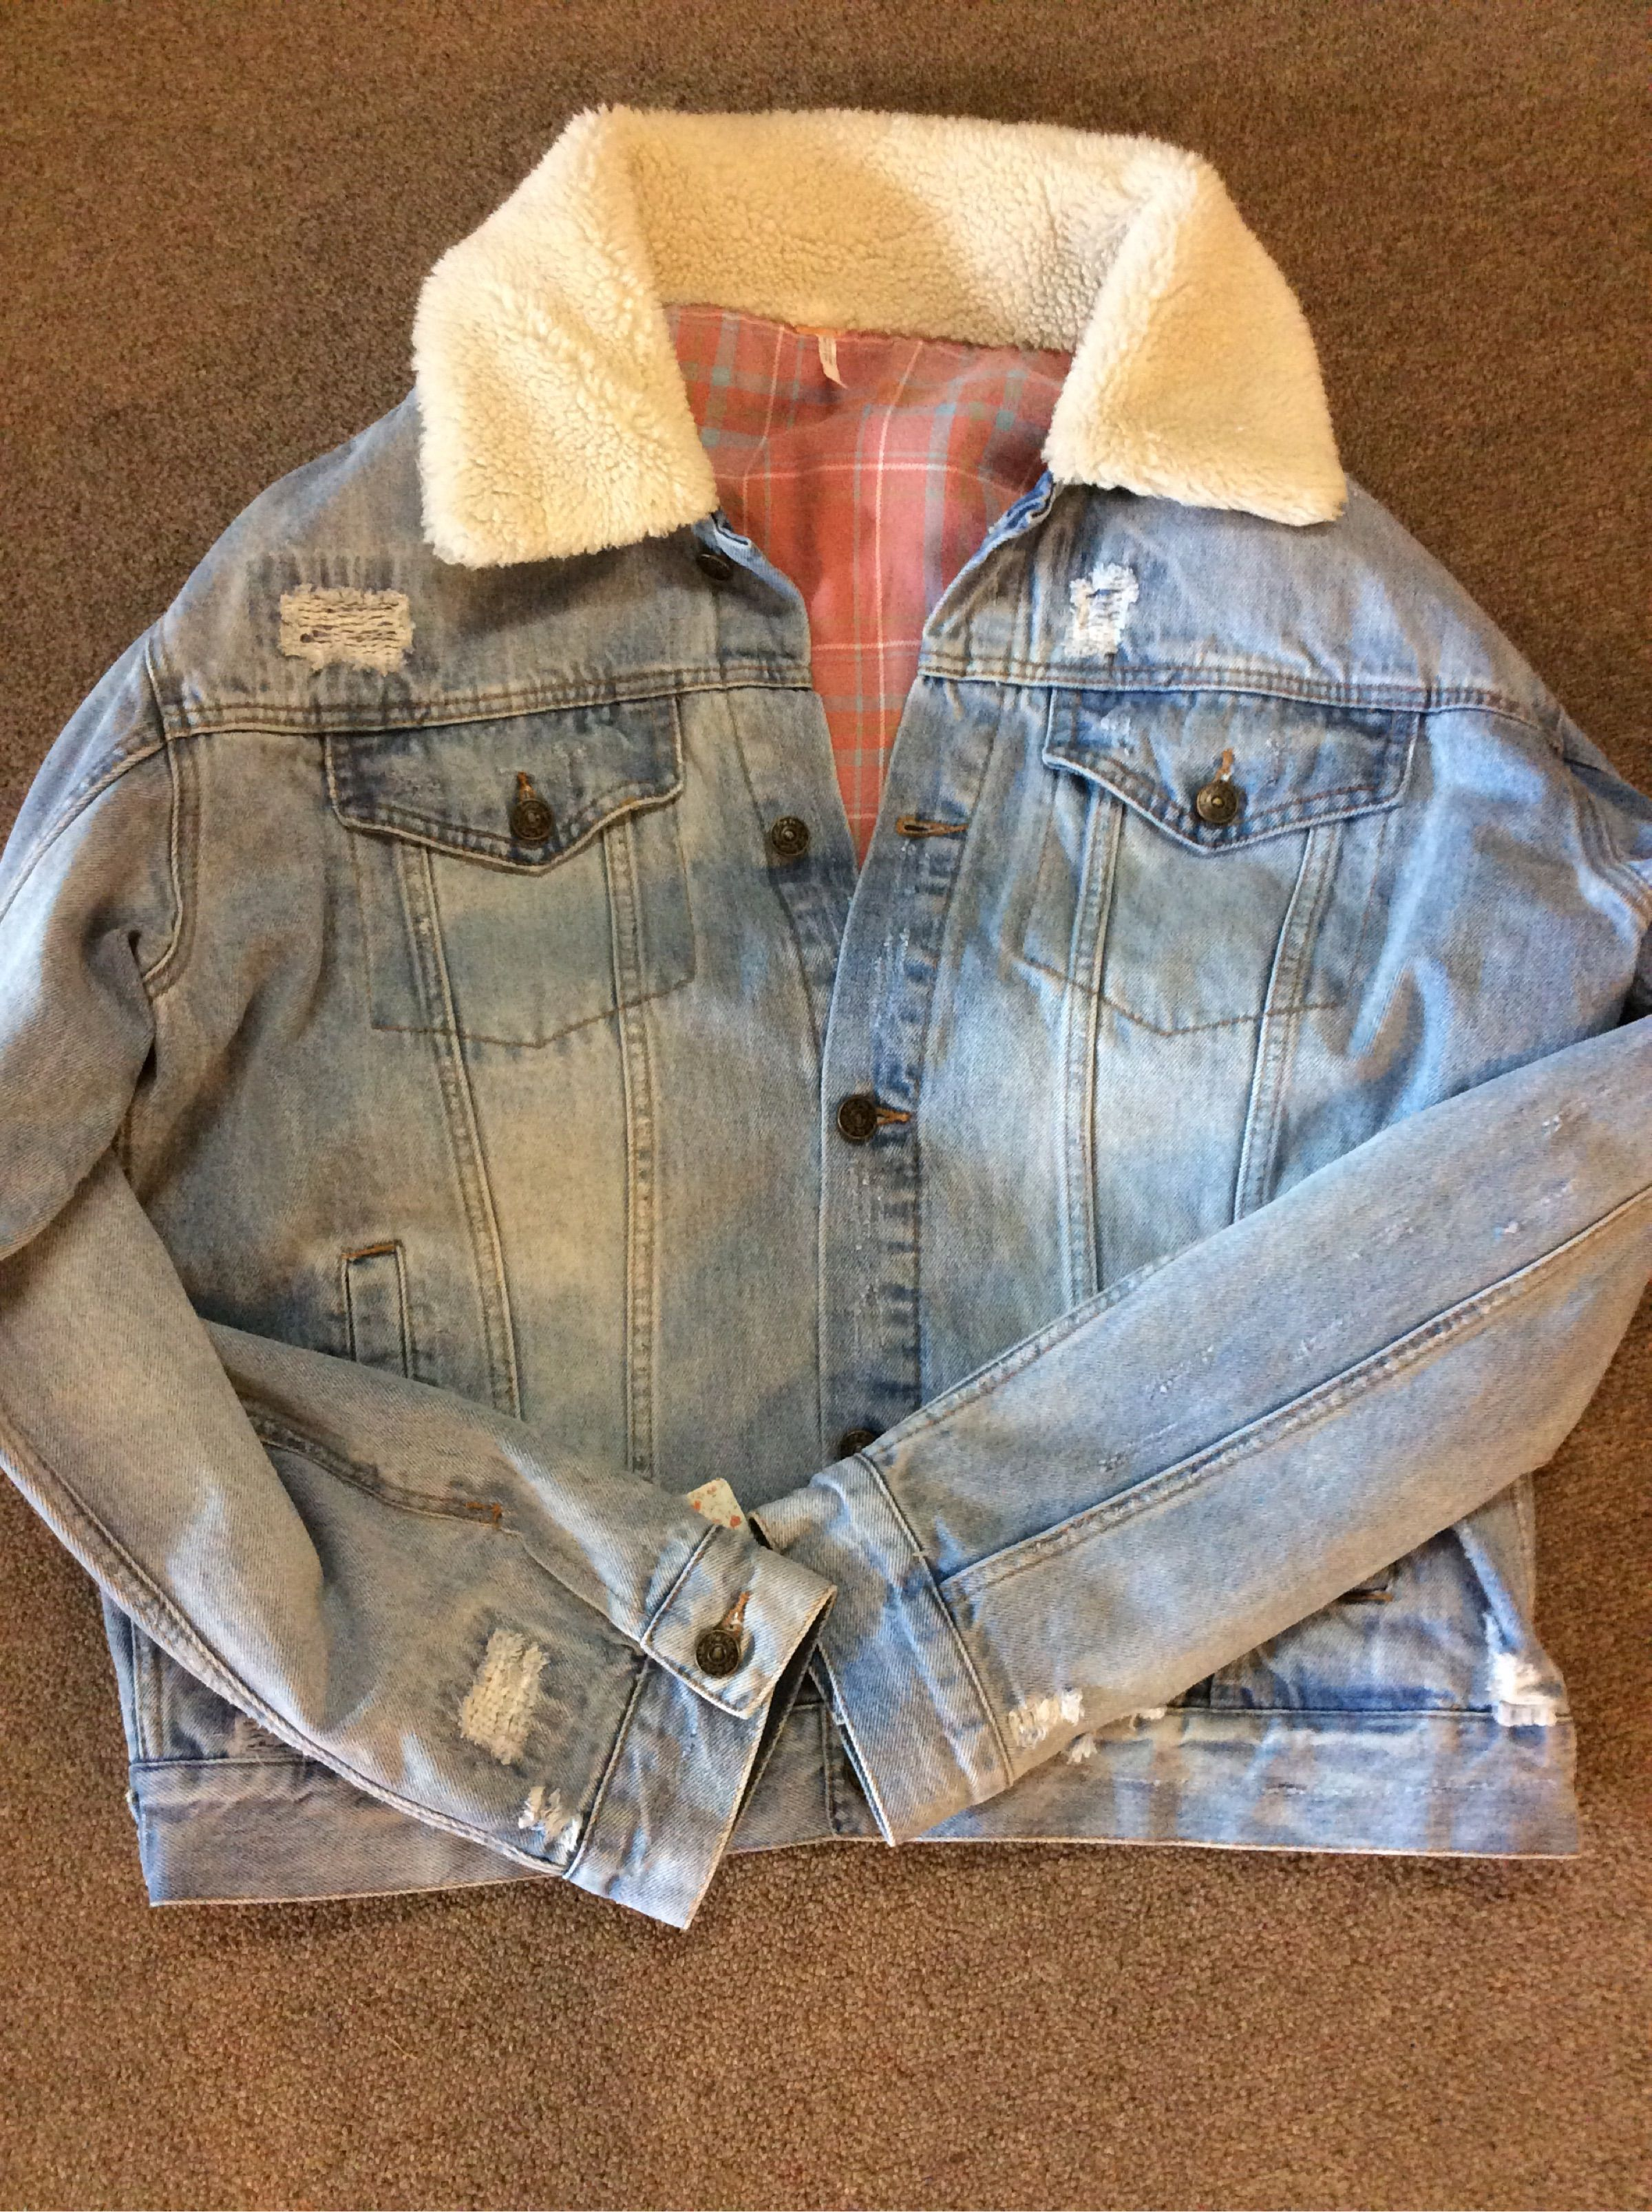 This Fp Jean Jacket Just Arrived It S A Must Flannel Inside And A Fury Collar To Keep You Warm Jean Jacket Jackets Denim Jacket [ 3214 x 2400 Pixel ]